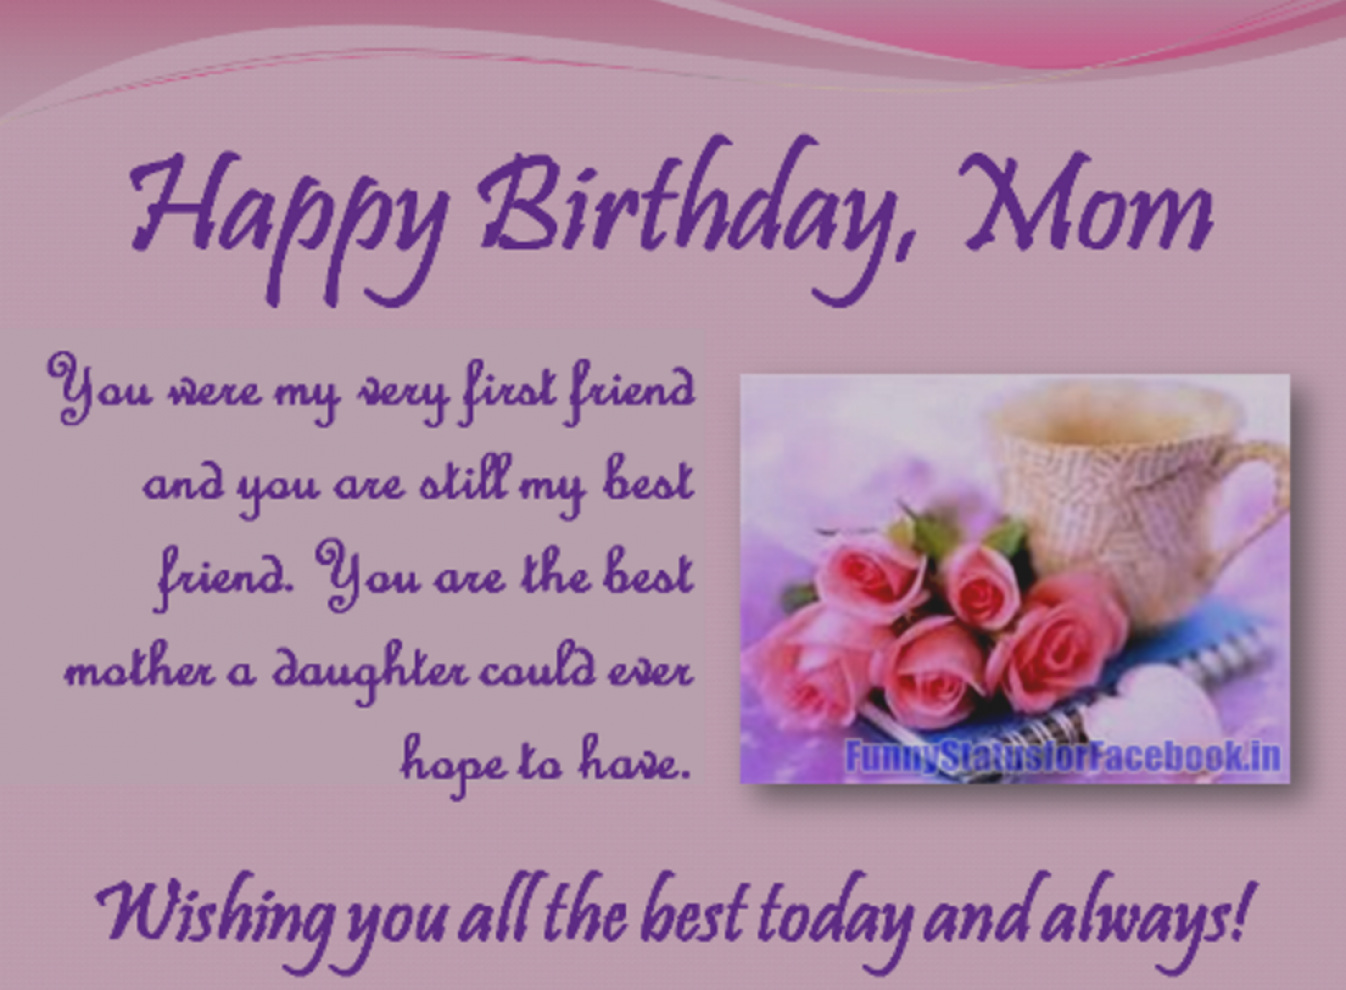 mom birthday card sayings from daughter ; latest-mom-birthday-card-sayings-from-daughter-10-heartfelt-cards-with-quotes-to-send-your-lovely